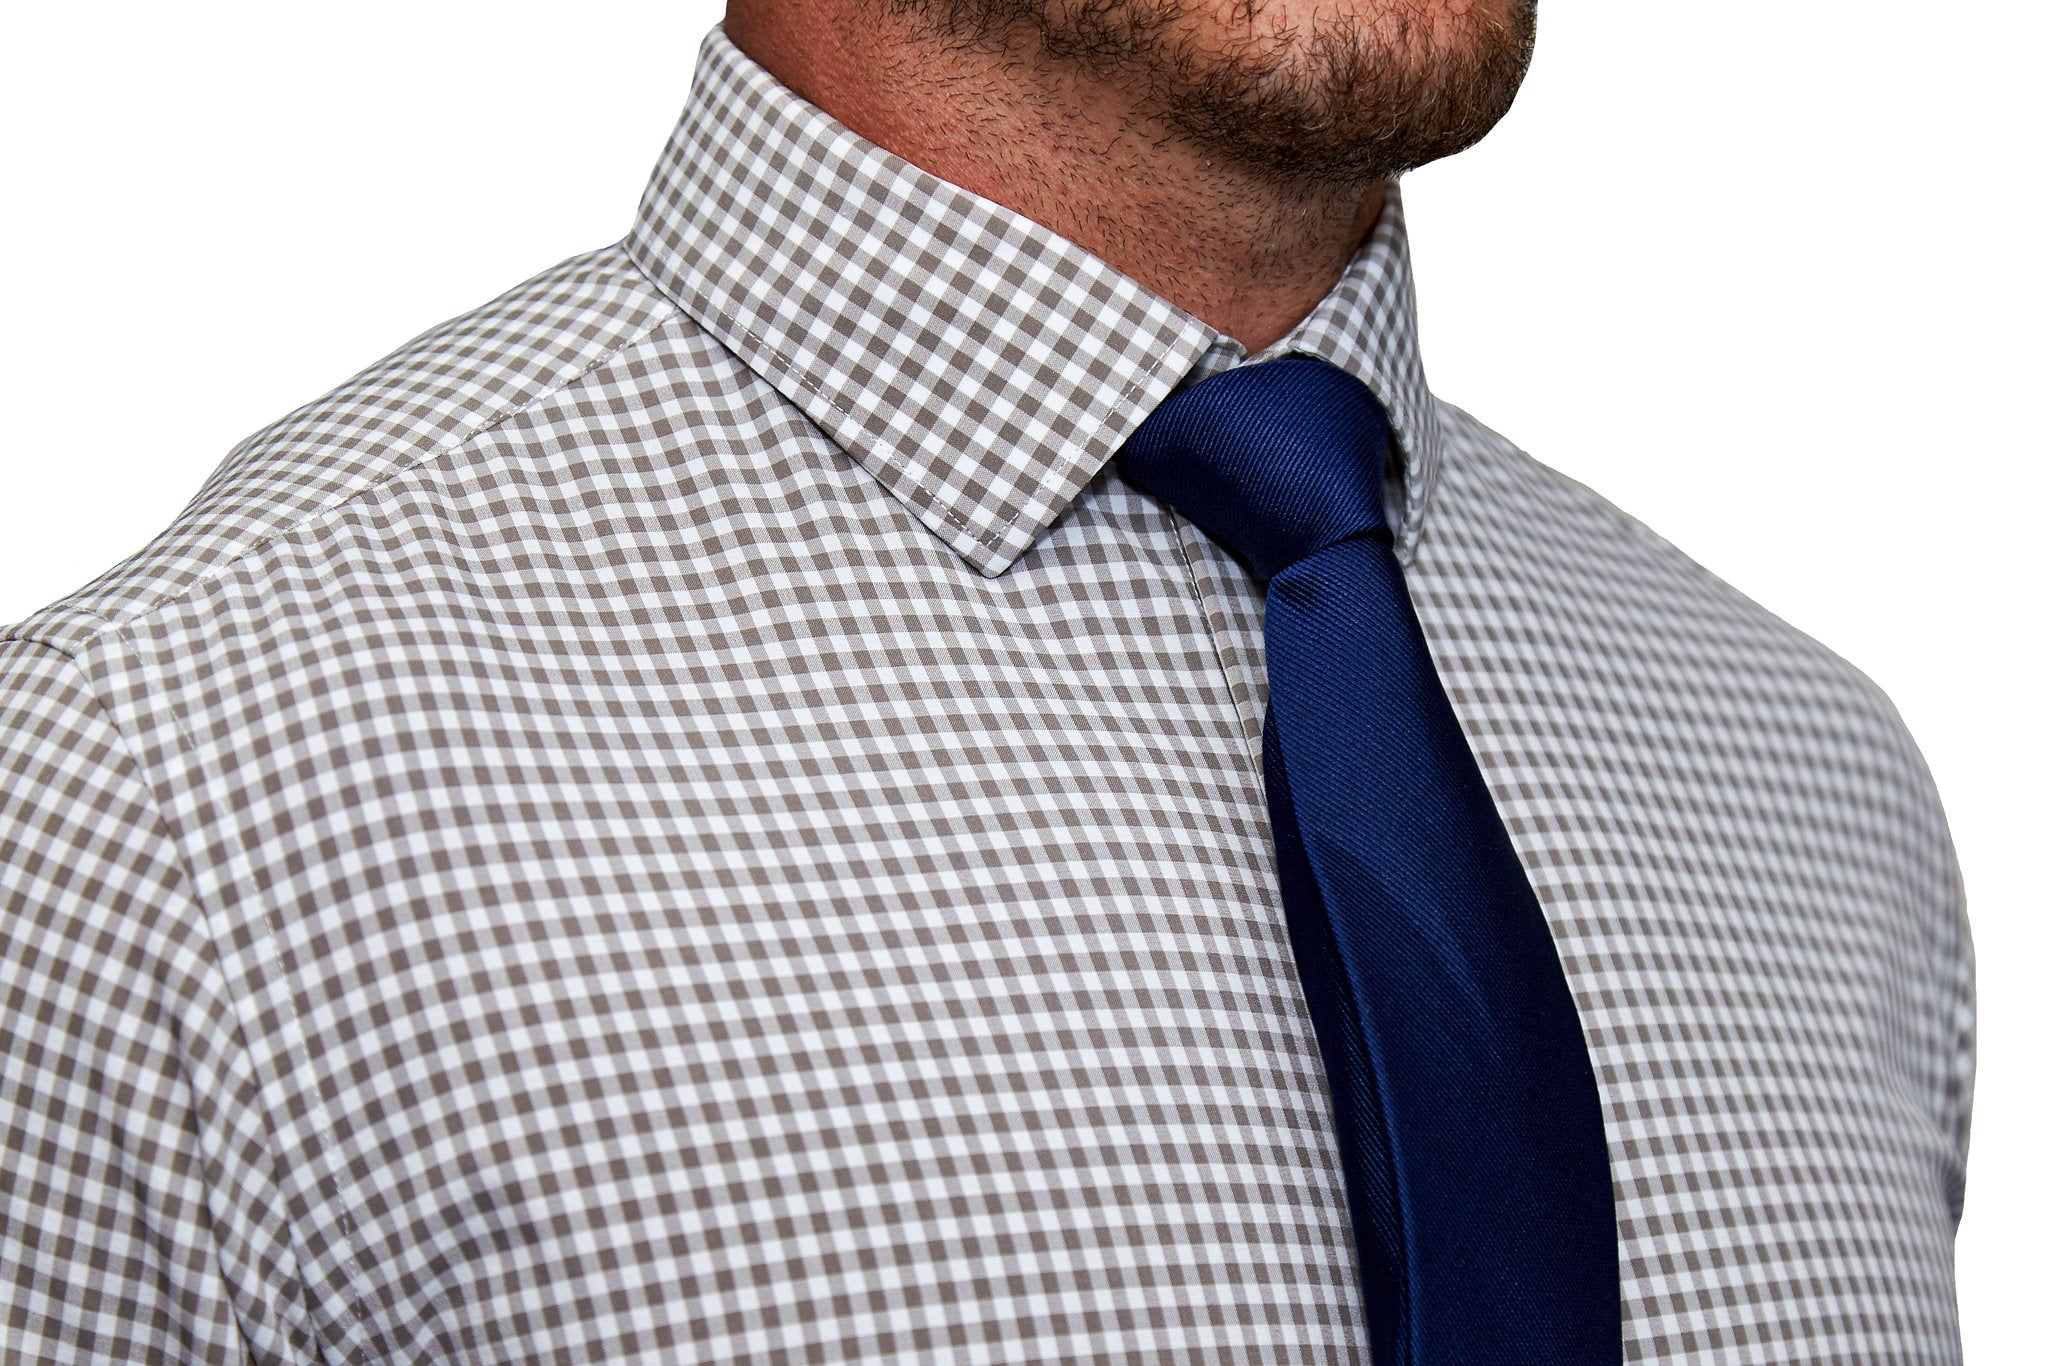 The Griffin Greybrown Gingham State And Liberty Clothing Company